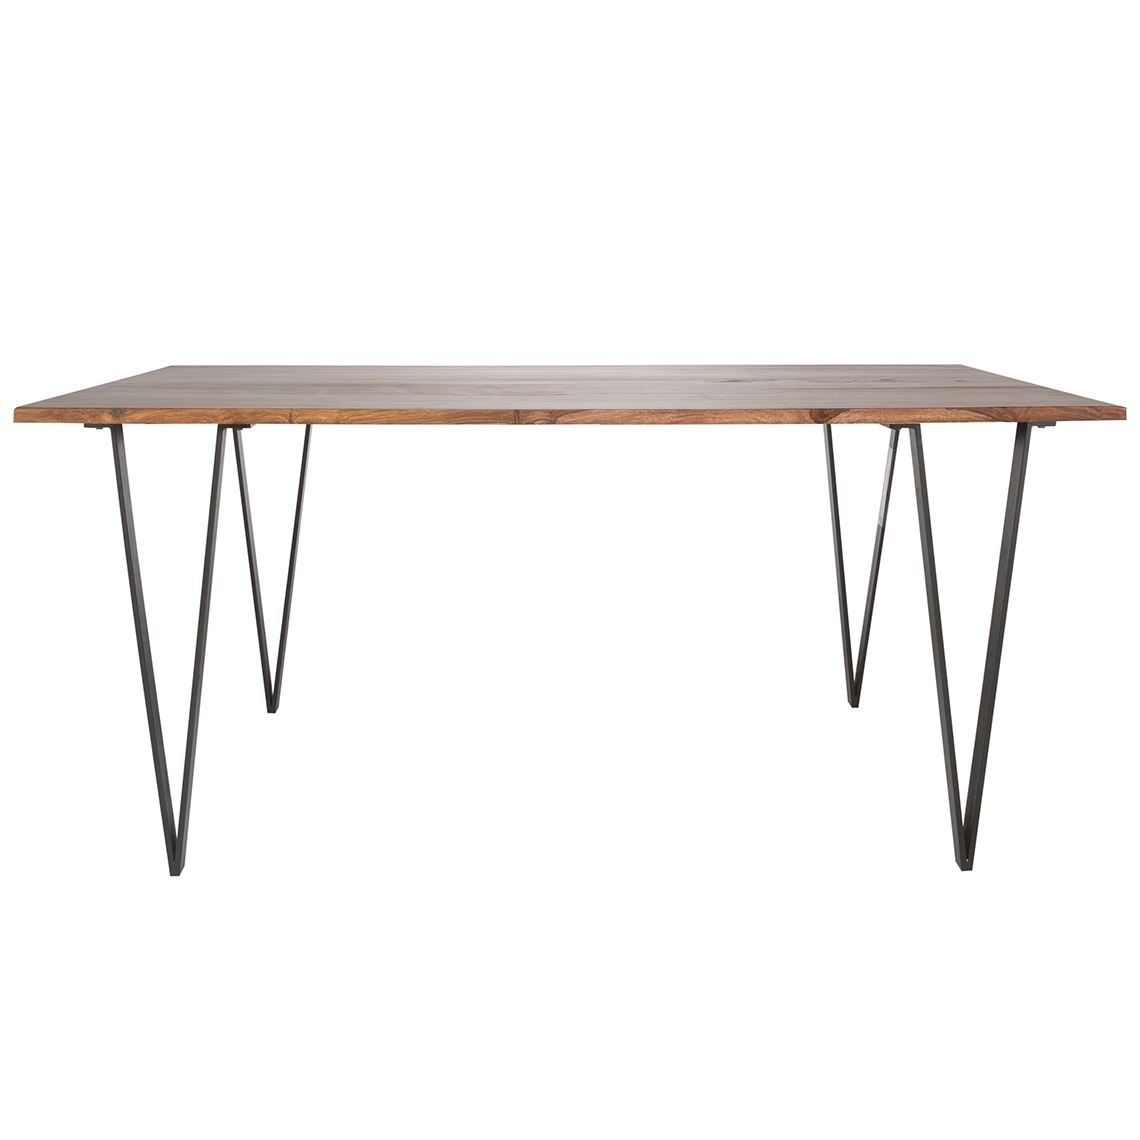 Wyatt Dining Table | Freedom Pertaining To Most Recently Released Wyatt Dining Tables (Image 15 of 20)